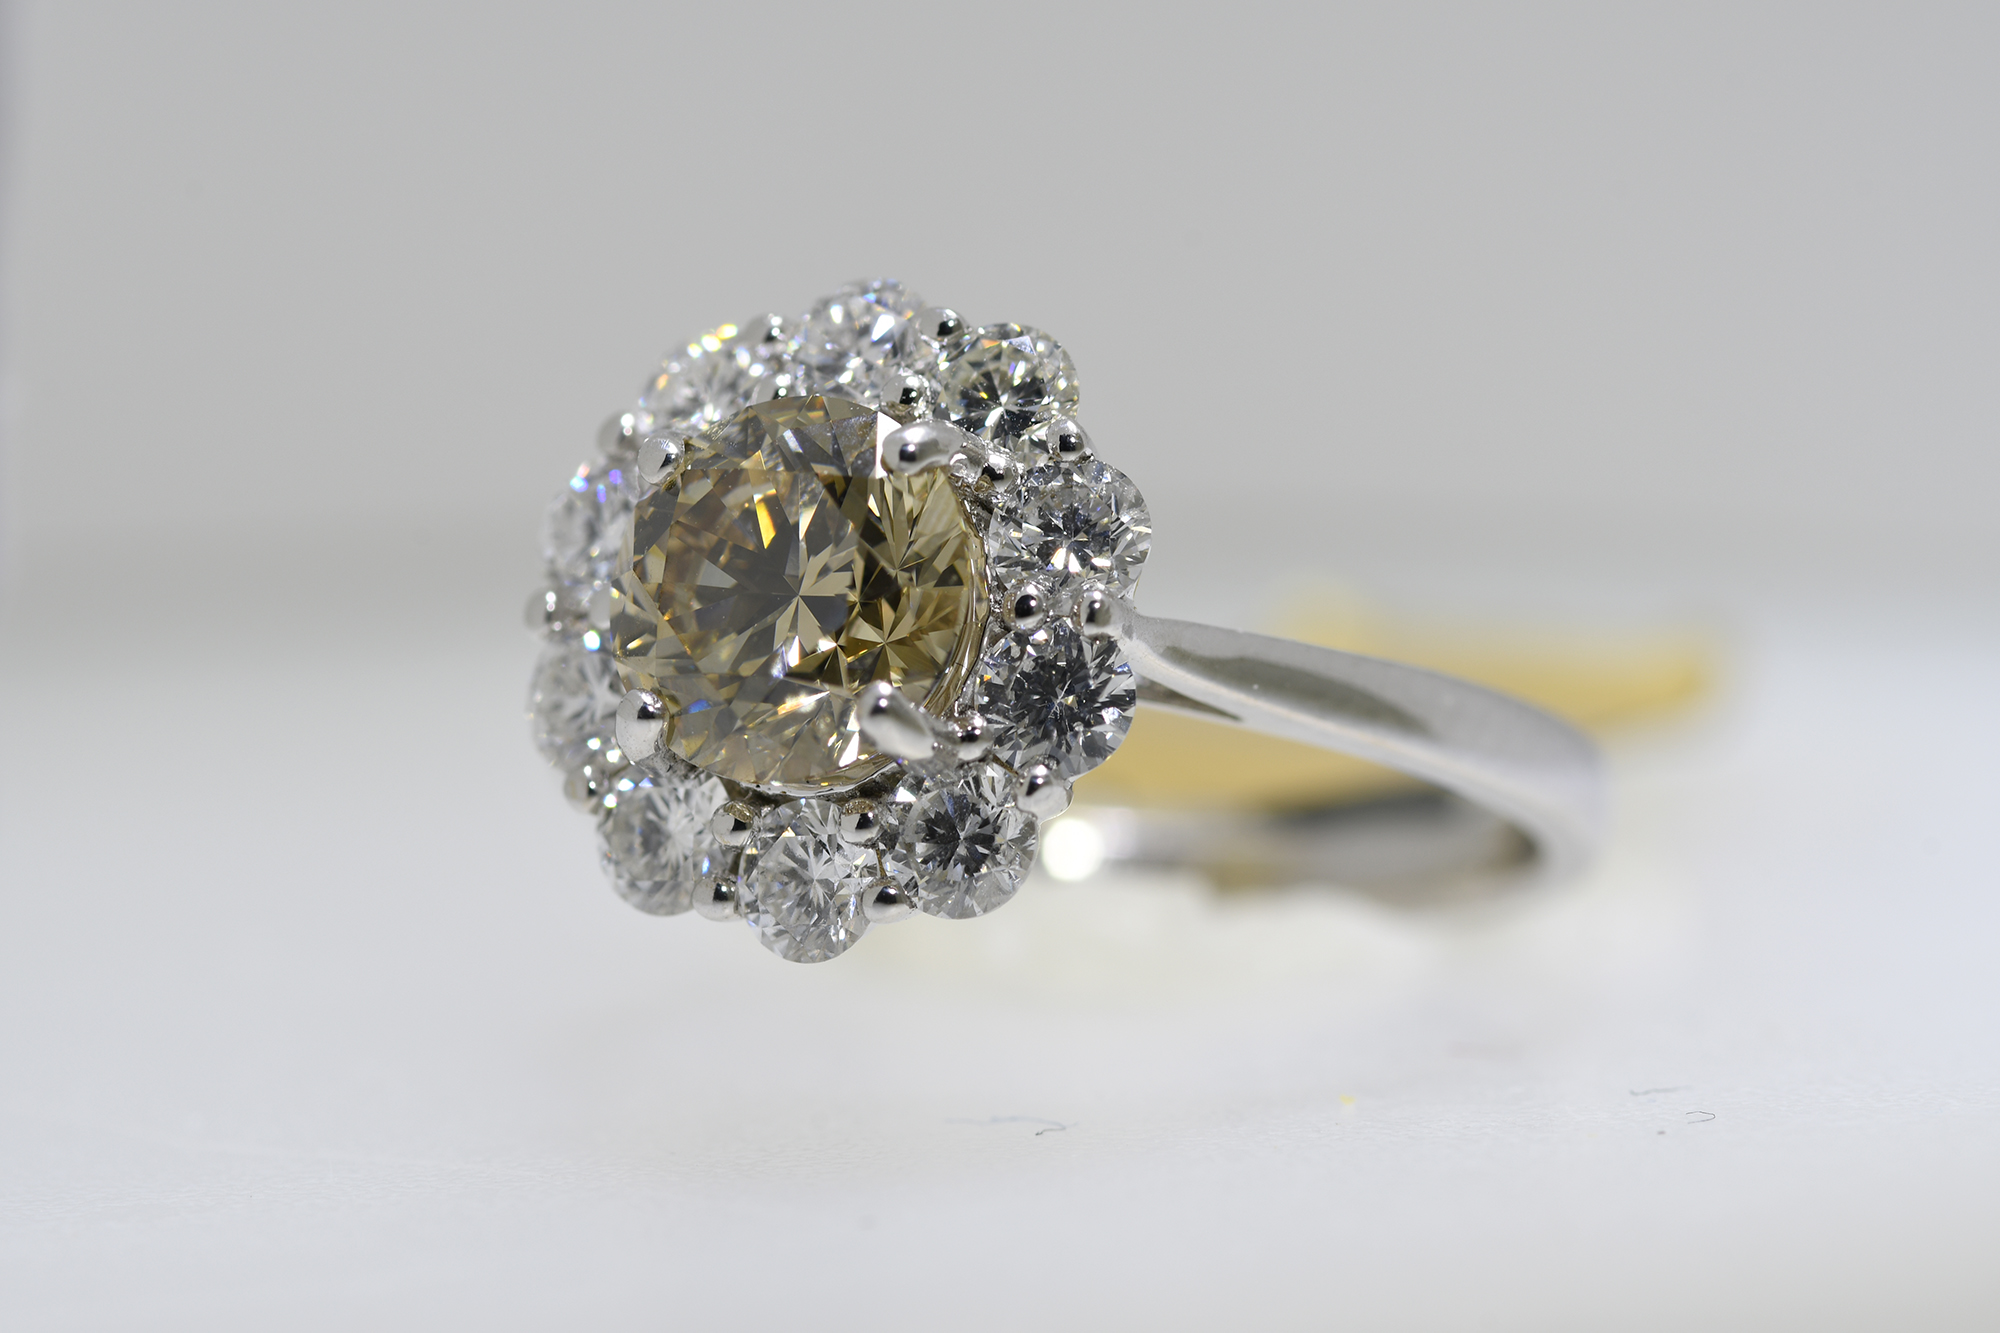 Cognac & White Diamond Ring - Image 3 of 4